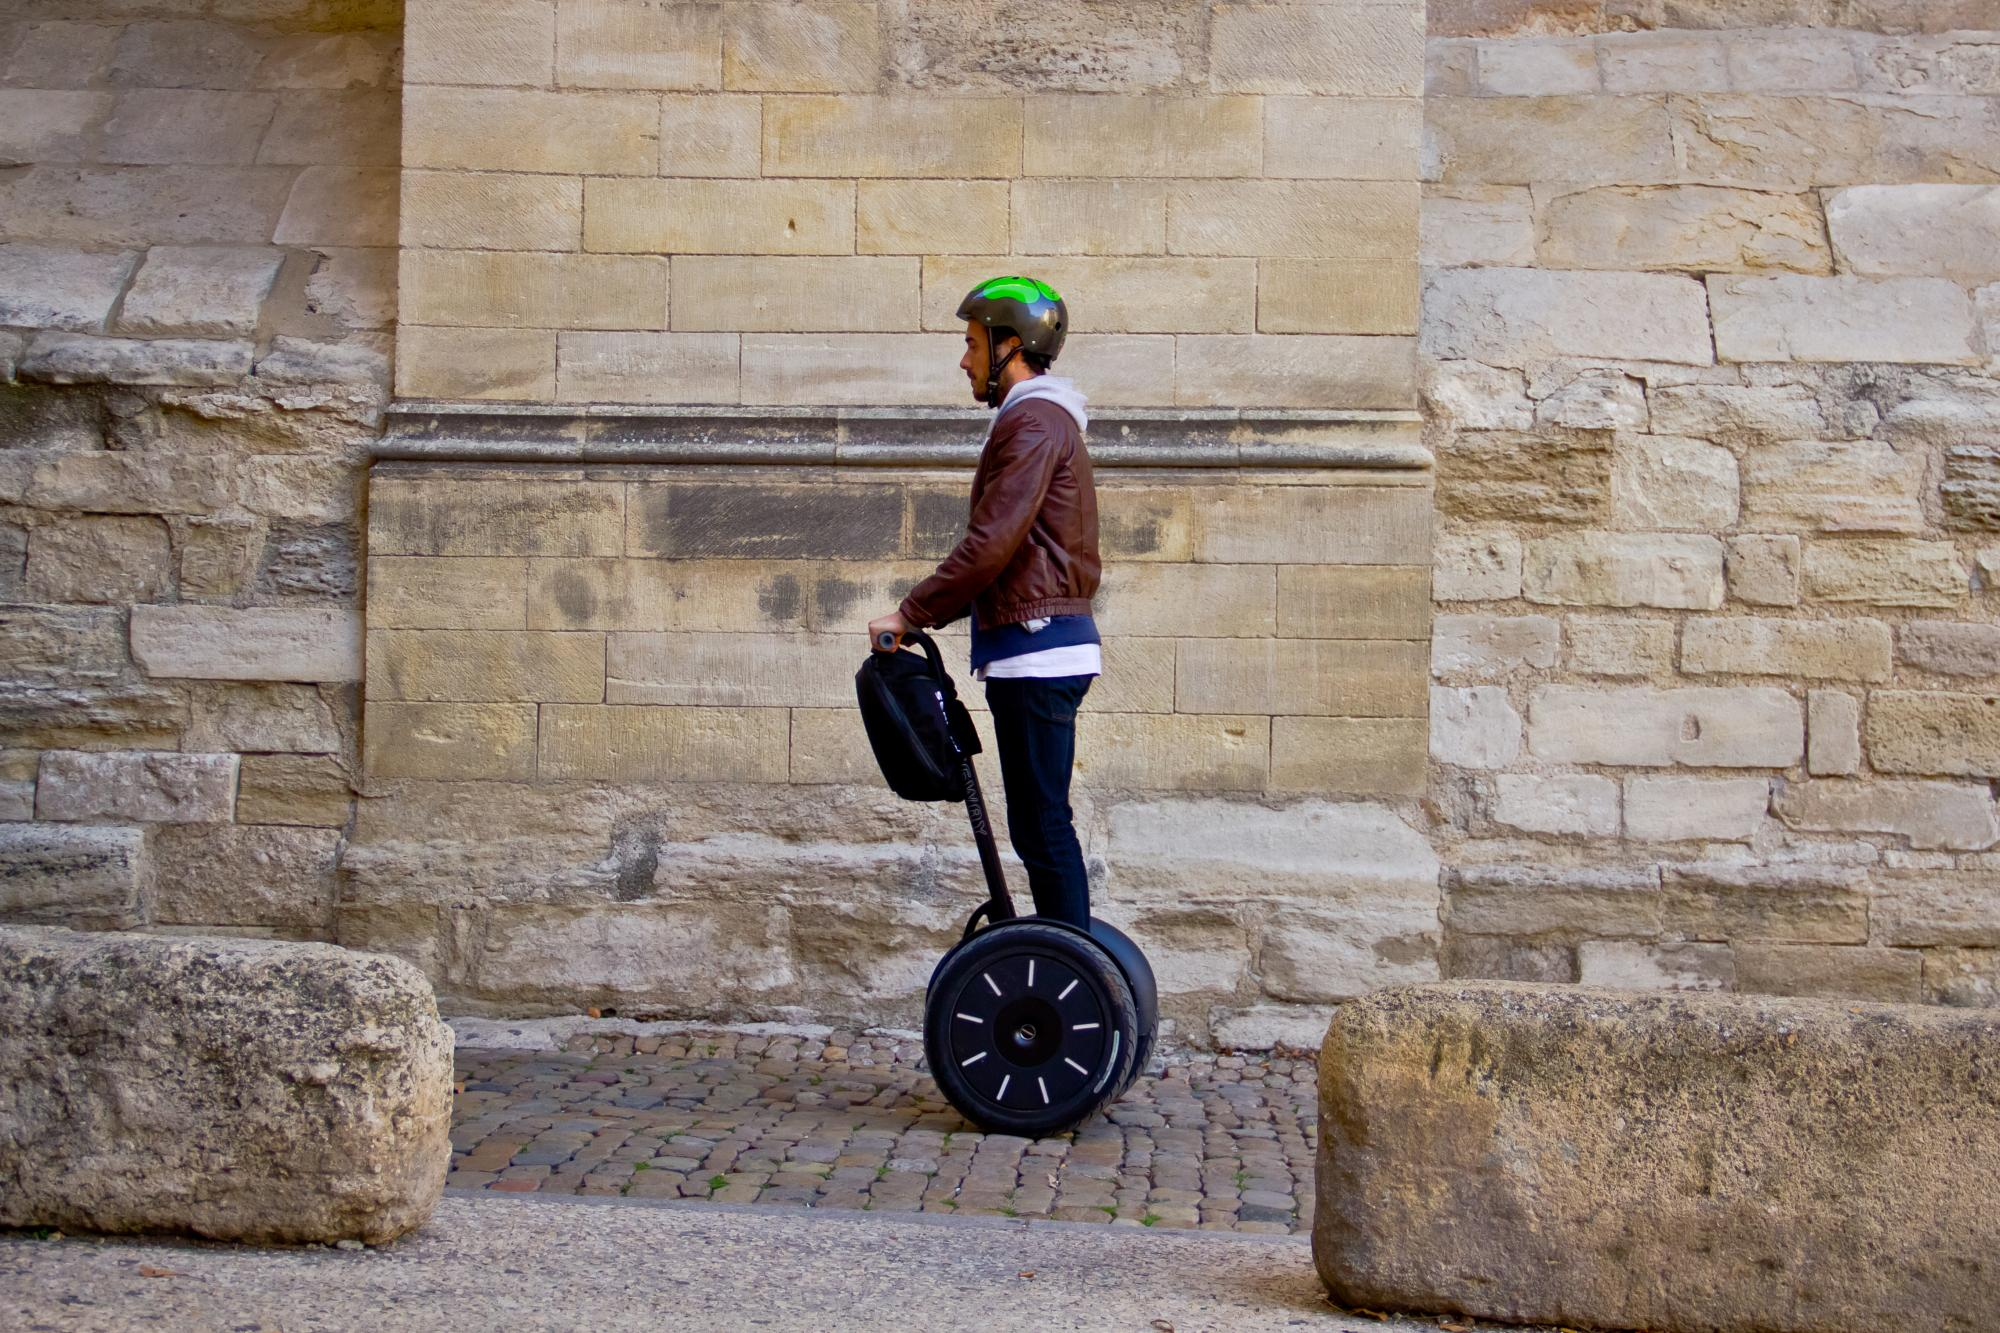 Segway from Nice to Villefranche-sur-Mer